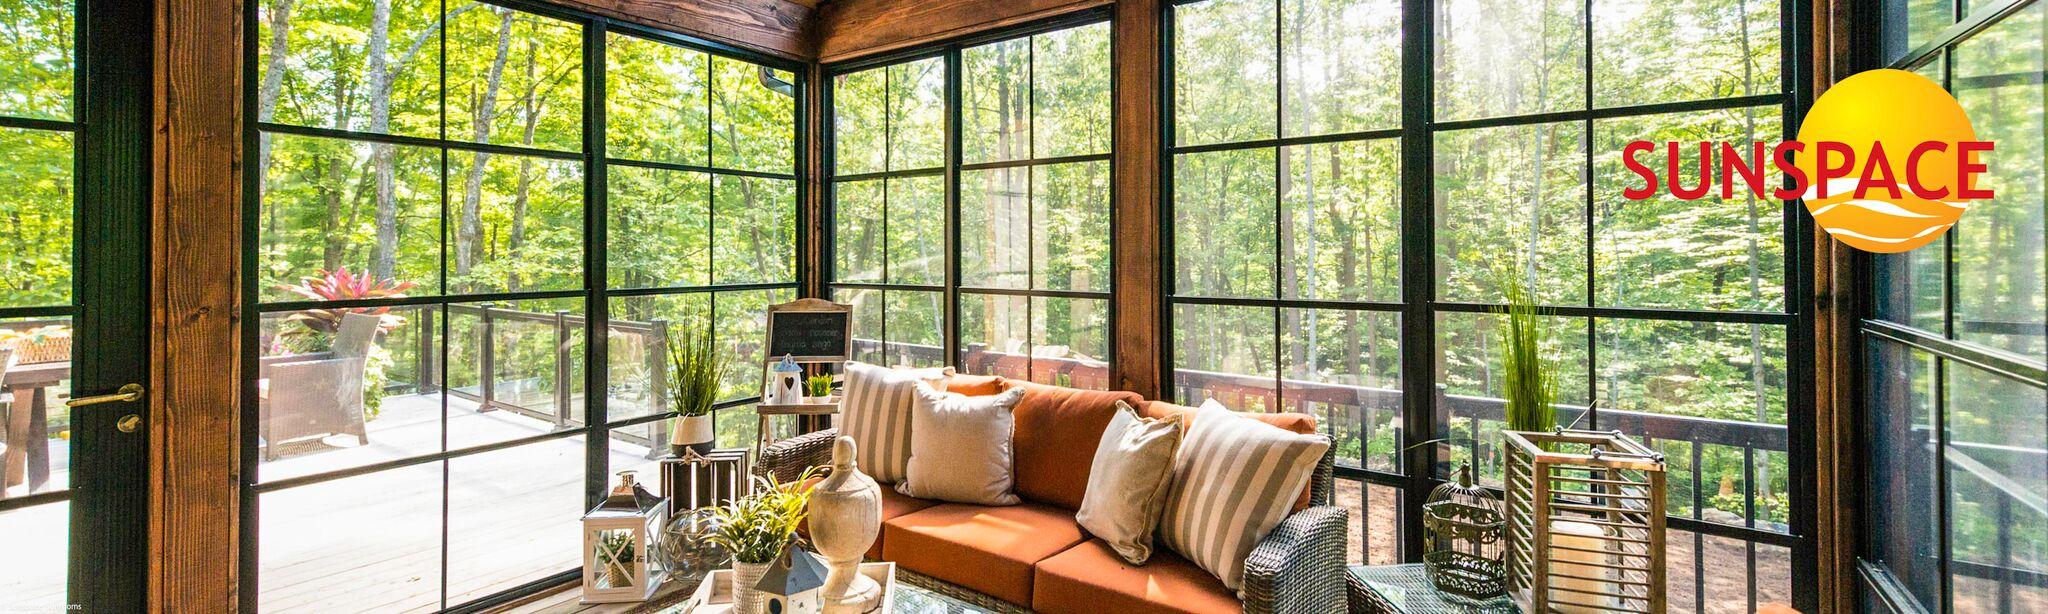 Sunspace Sunroom